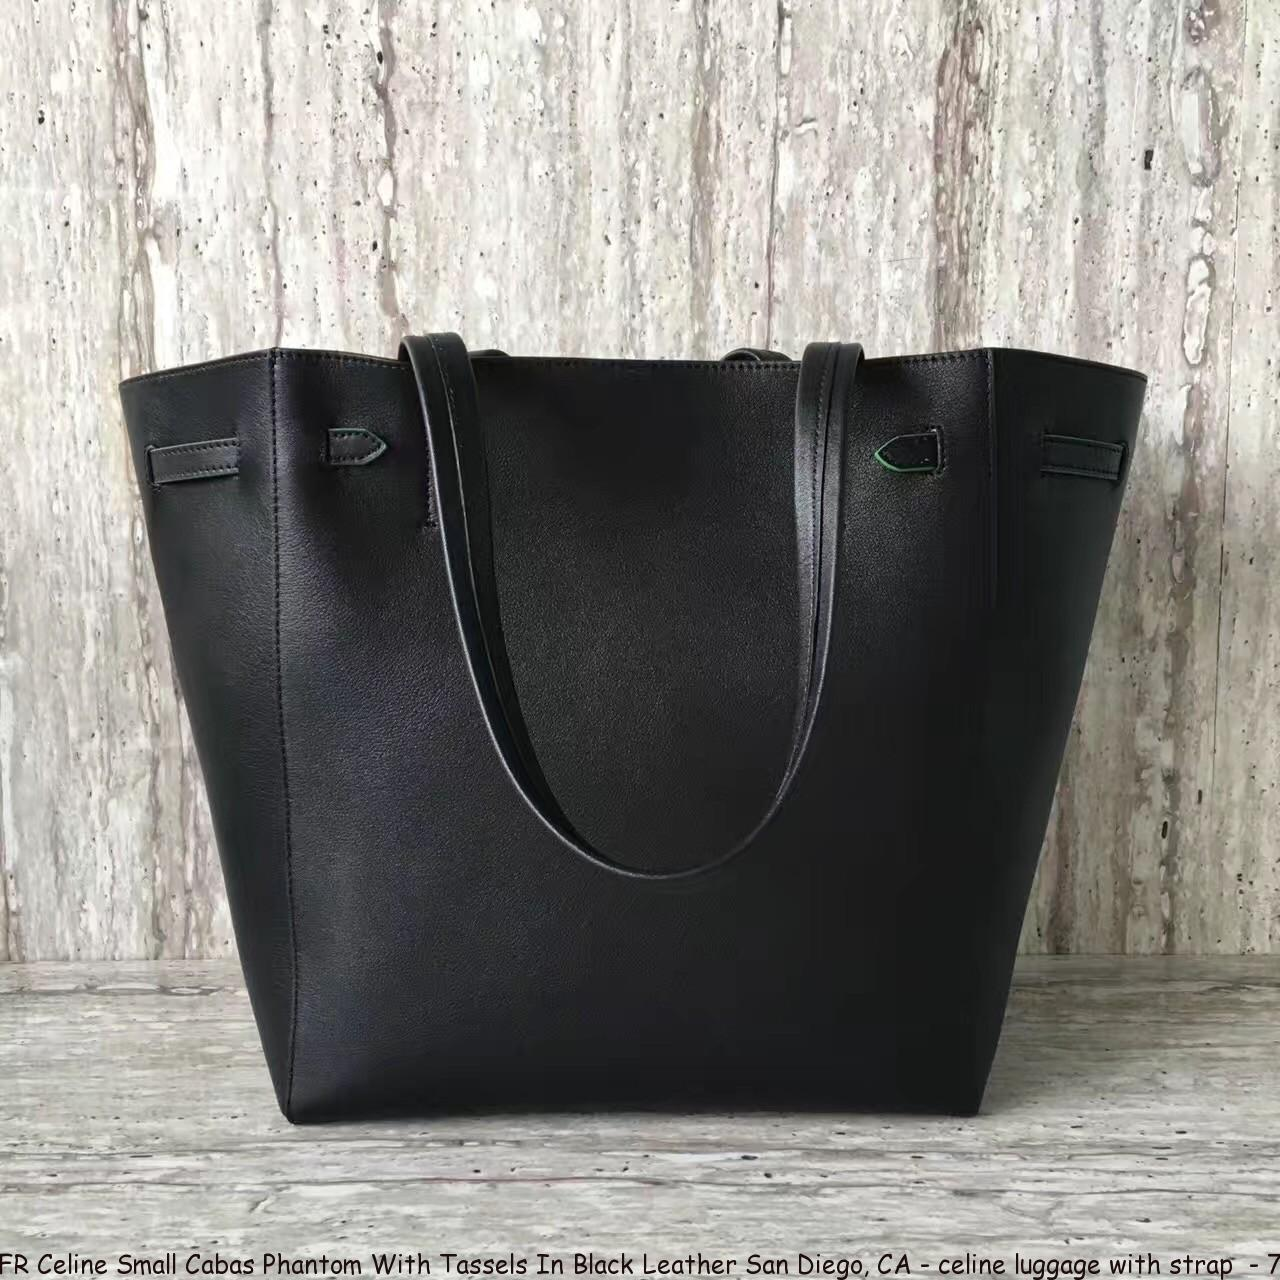 399a648a0159 FR Celine Small Cabas Phantom With Tassels In Black Leather San ...